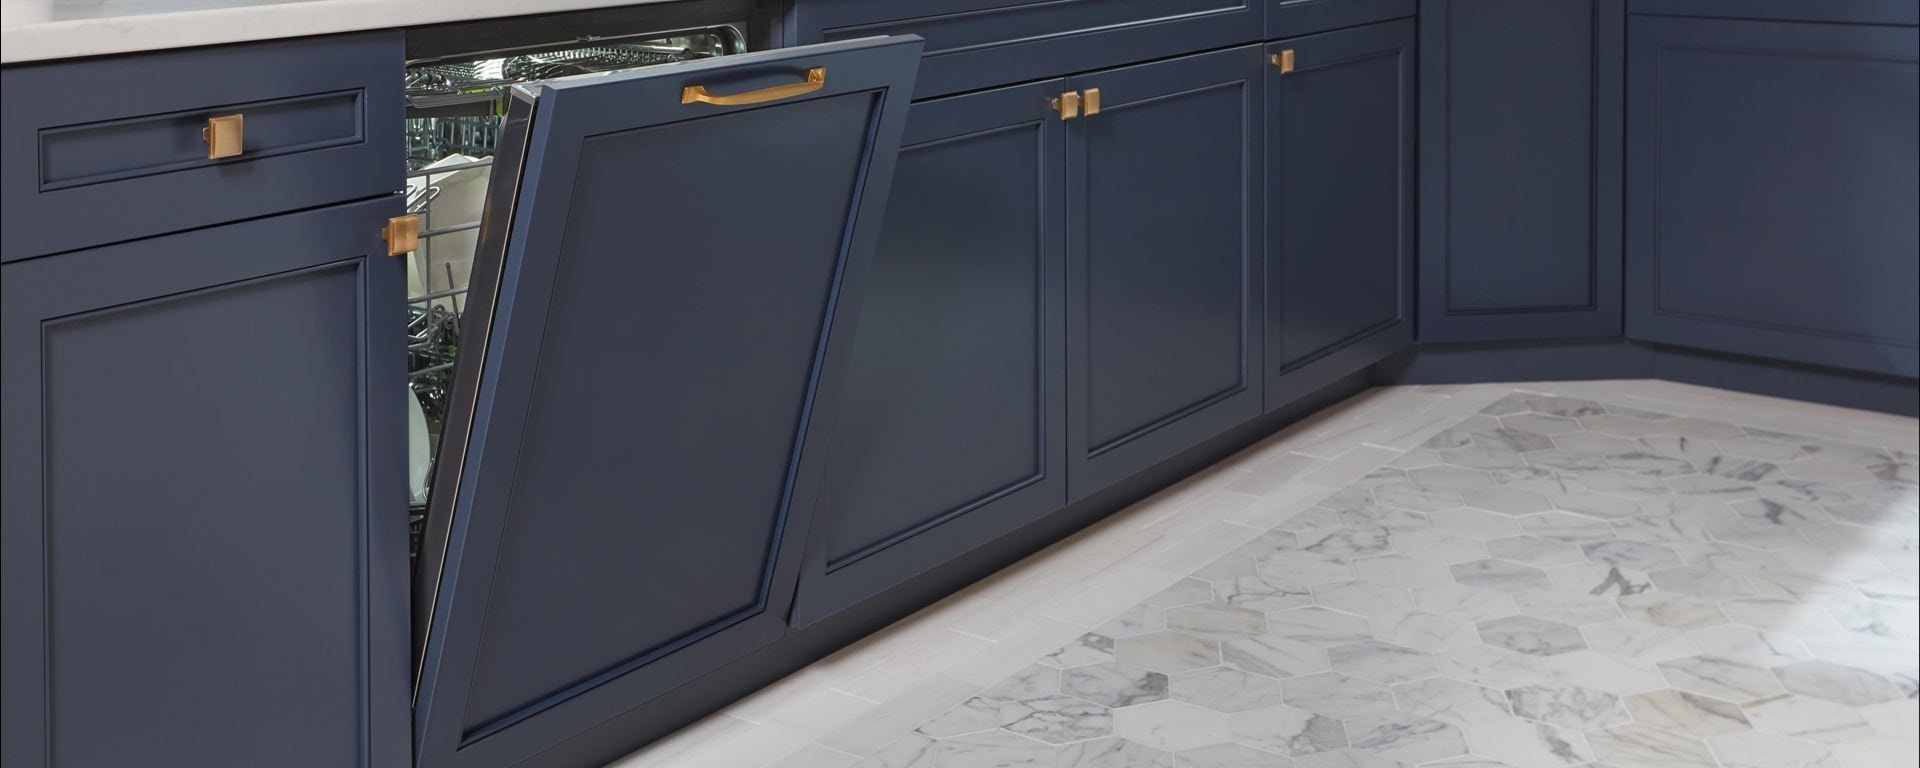 "Cove 24"" built-in dishwasher (DW2450WS) with custom panel to match kitchen cabinetry"